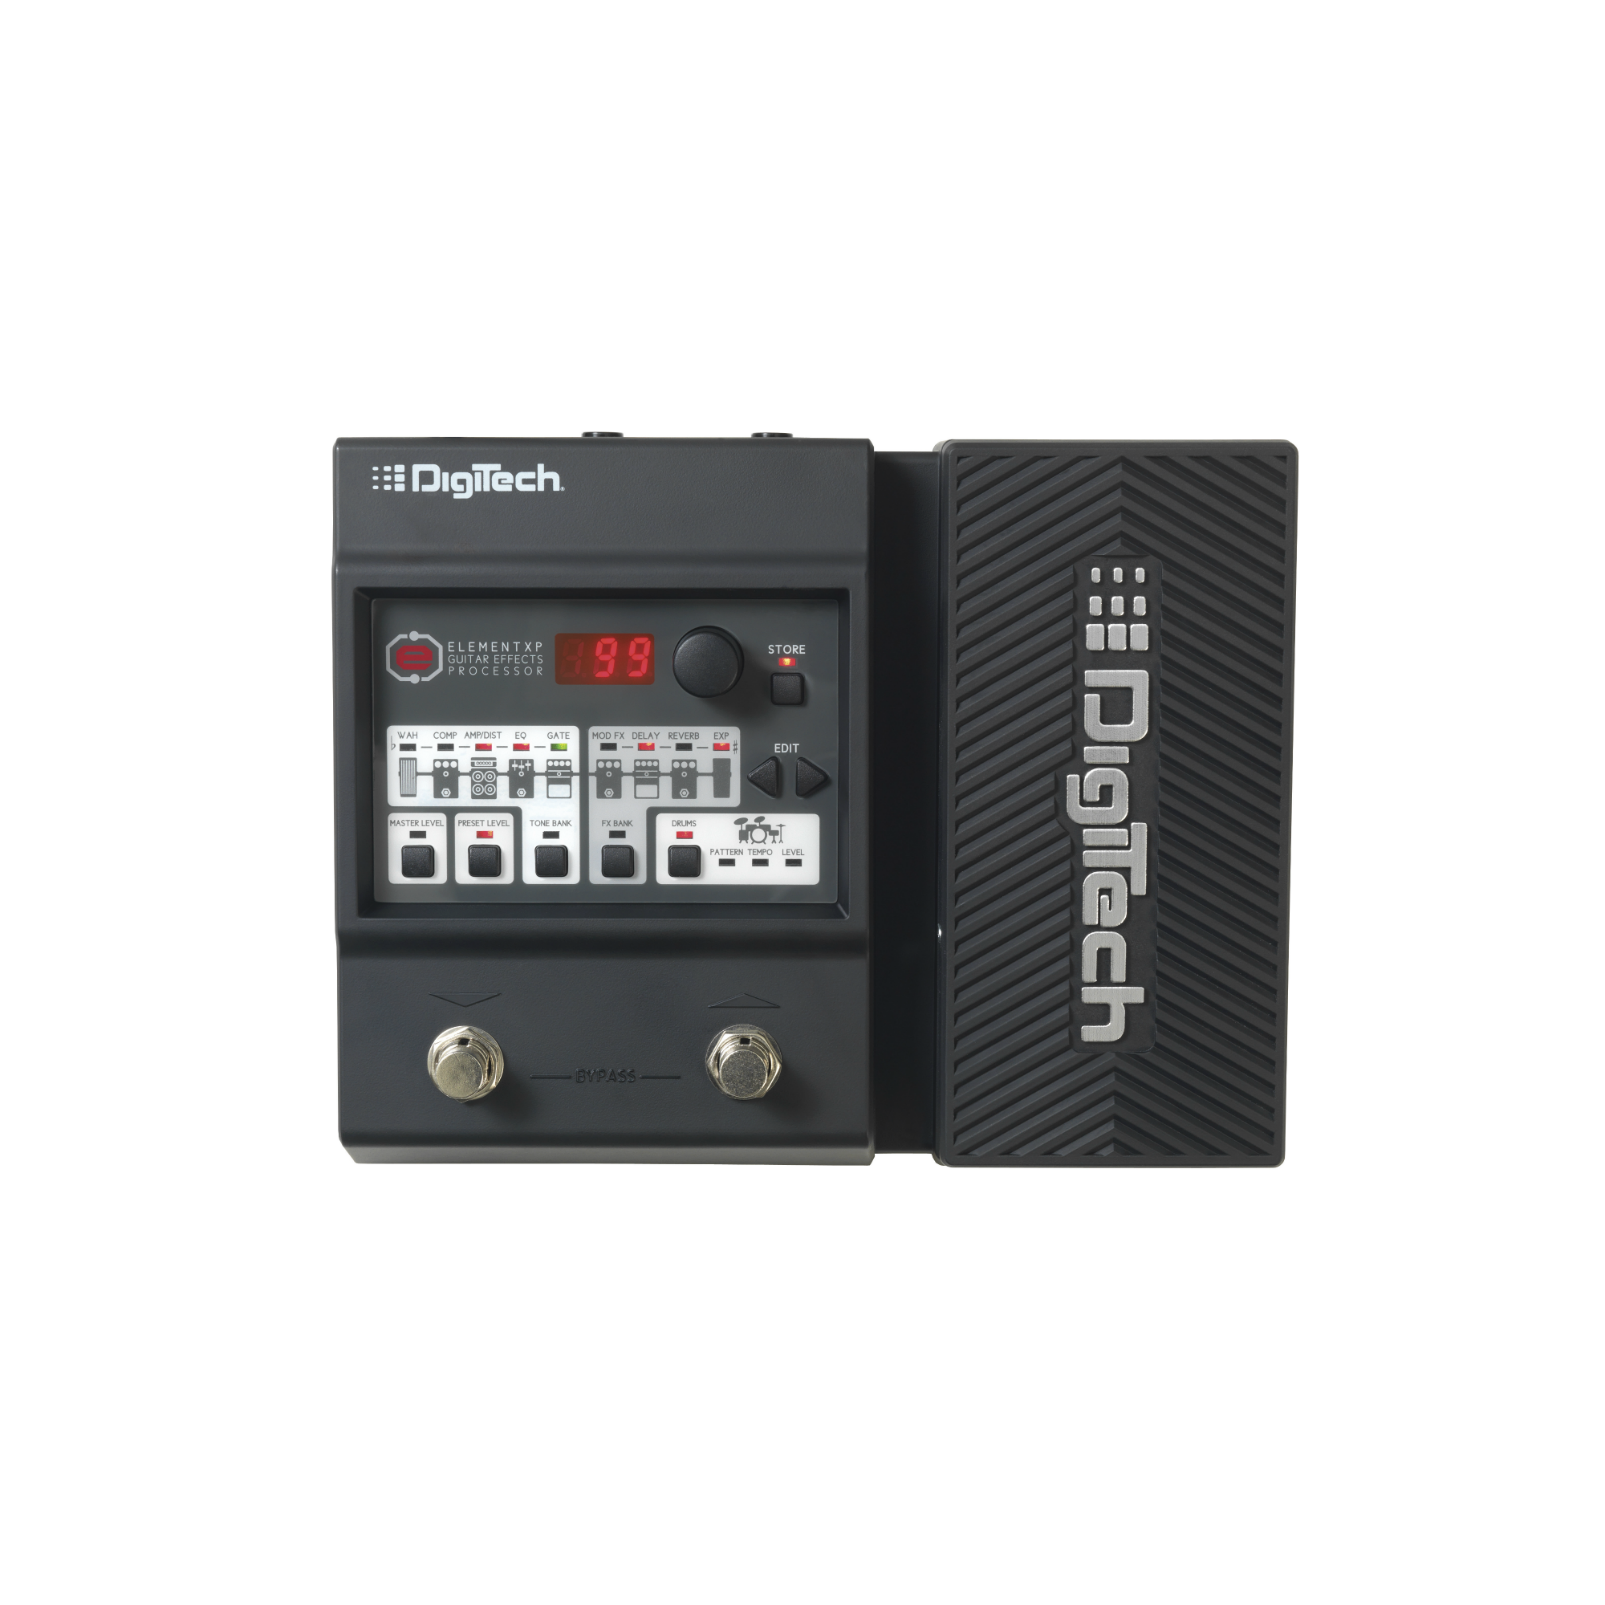 DigiTech Element XP (discontinued) - Black - Guitar Multi-Effects Processor with Expression Pedal - Front